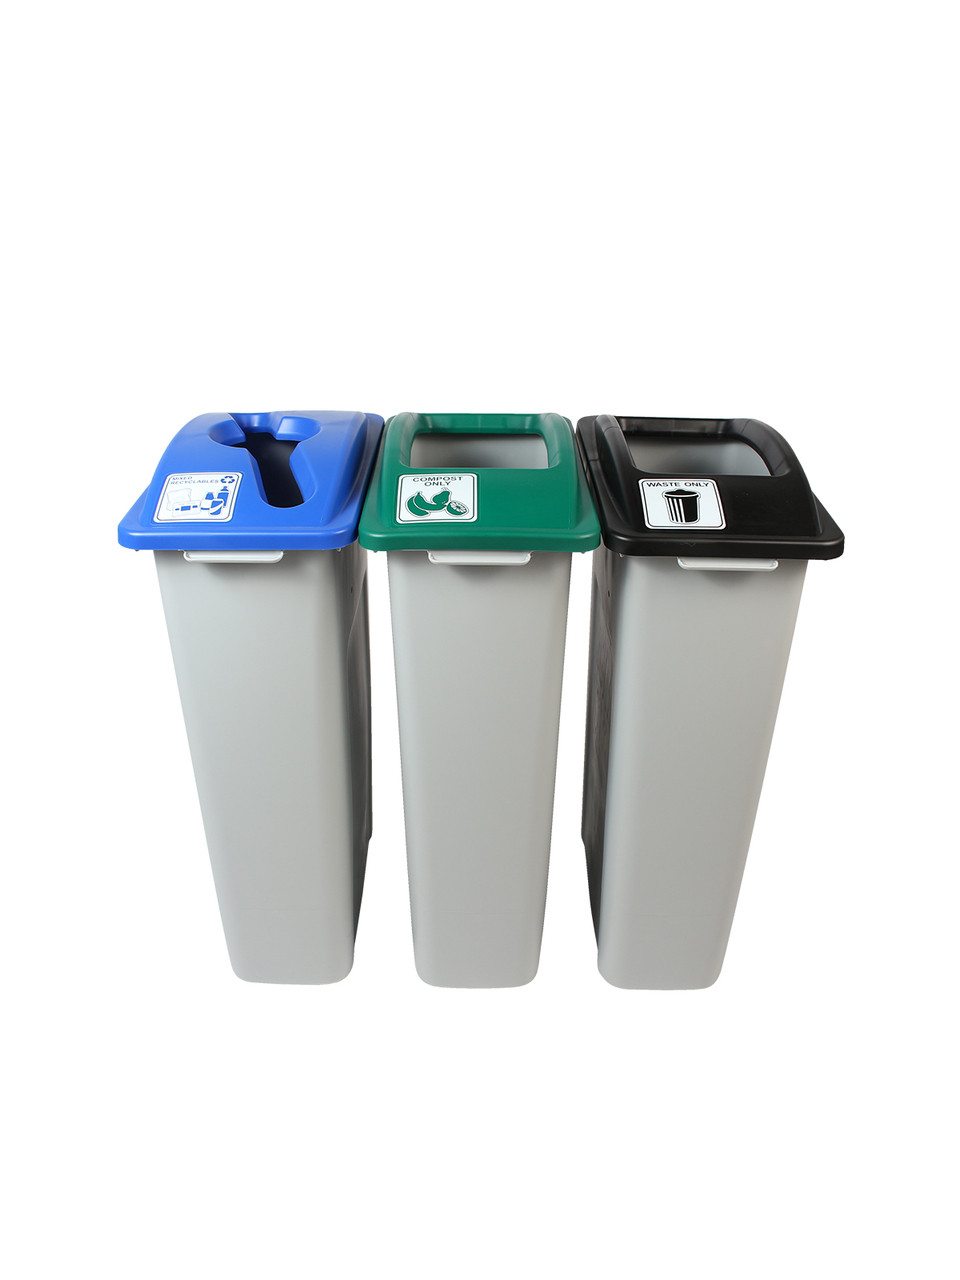 69 Gallon Simple Sort Skinny Recycle Bin Center 8105047-244 (Mixed, Compost, Waste)